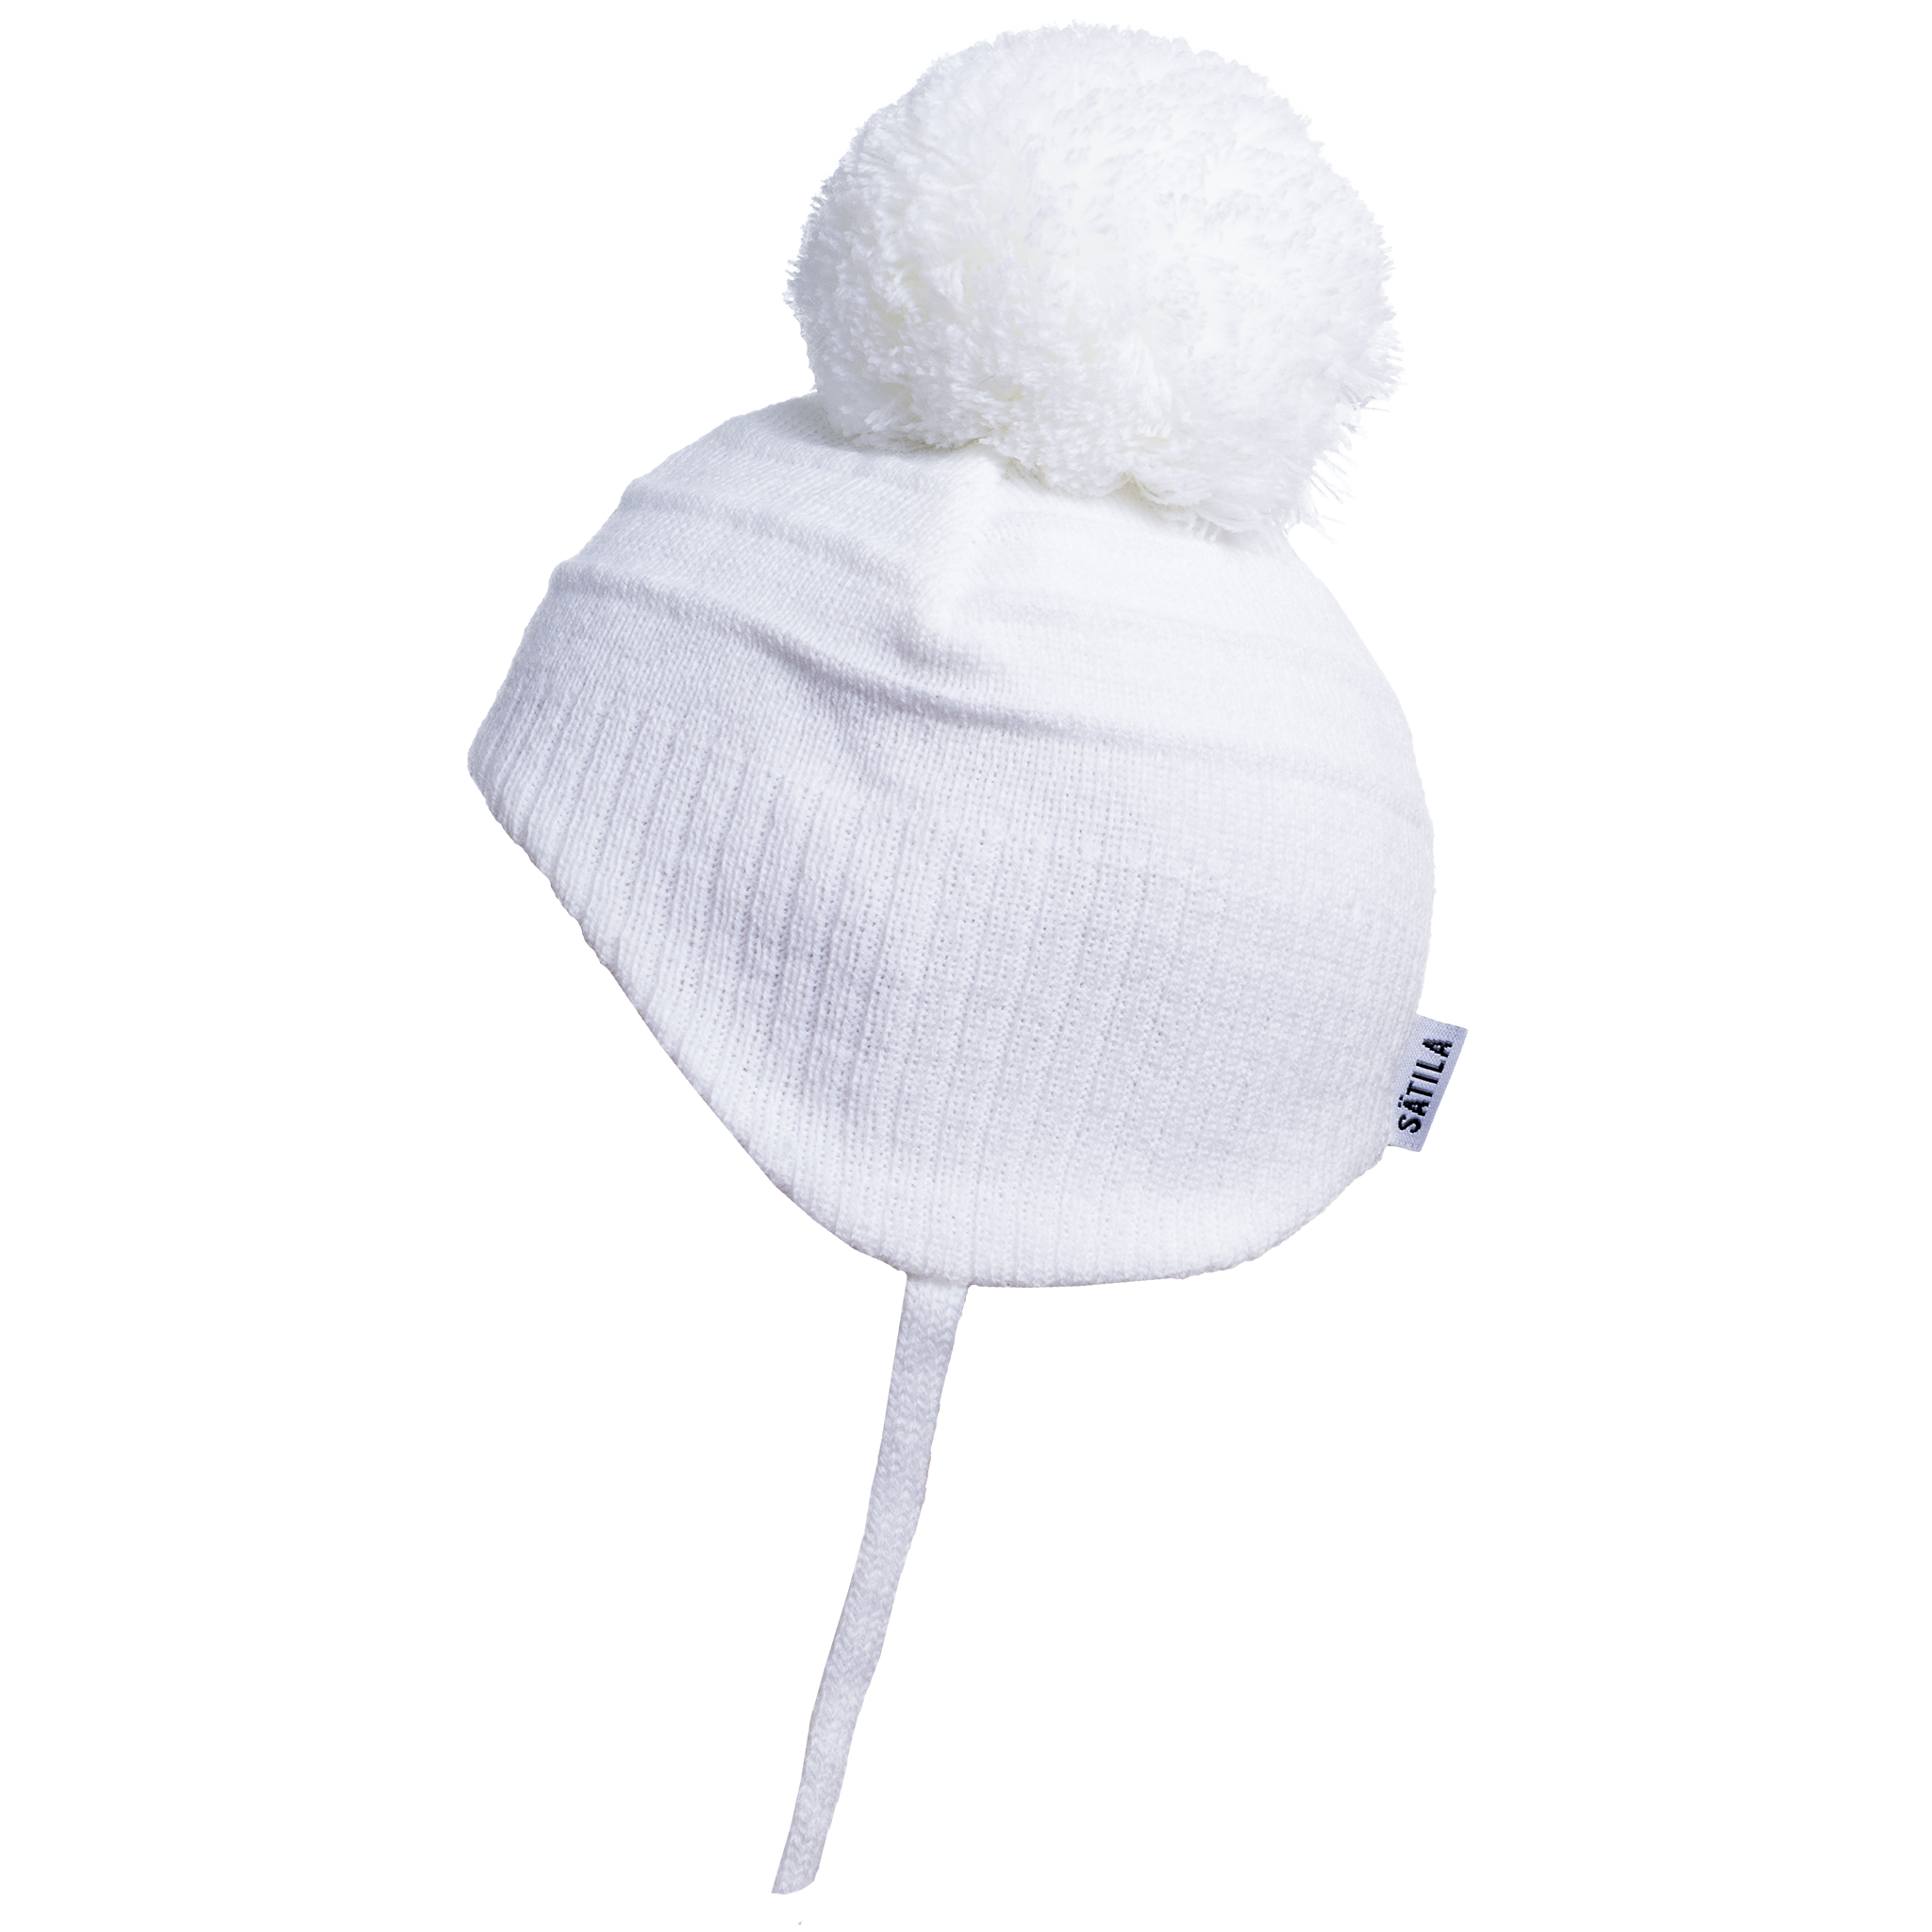 Satila Satila White Baby Hat with pom pom Tiny C72914